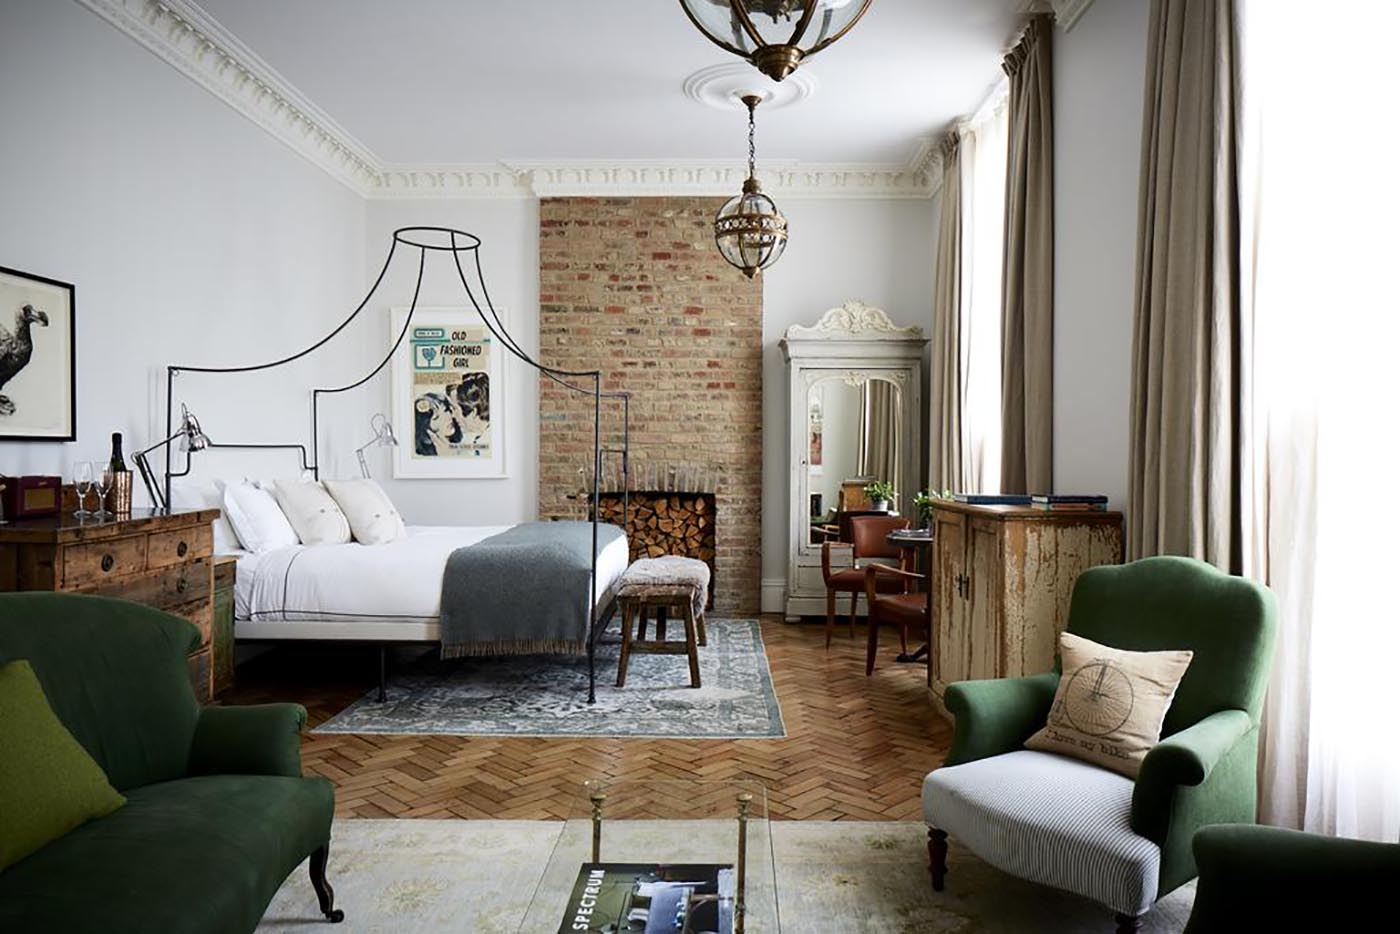 Best hotels in london 2018 edition the discoveries of for Hotel design london